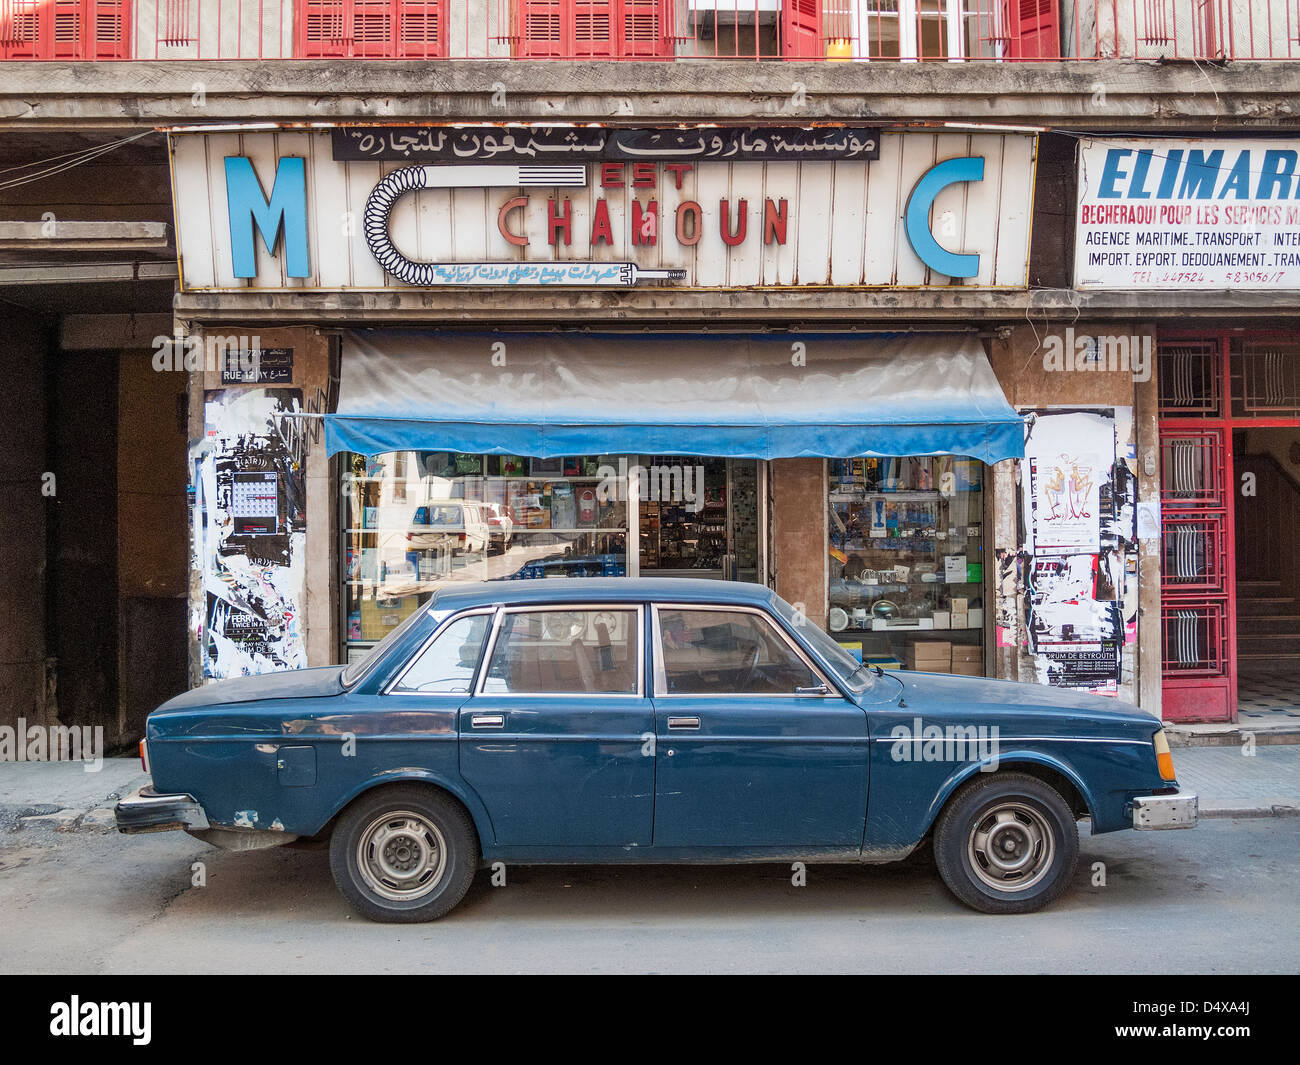 La rue de Beyrouth au Liban Photo Stock